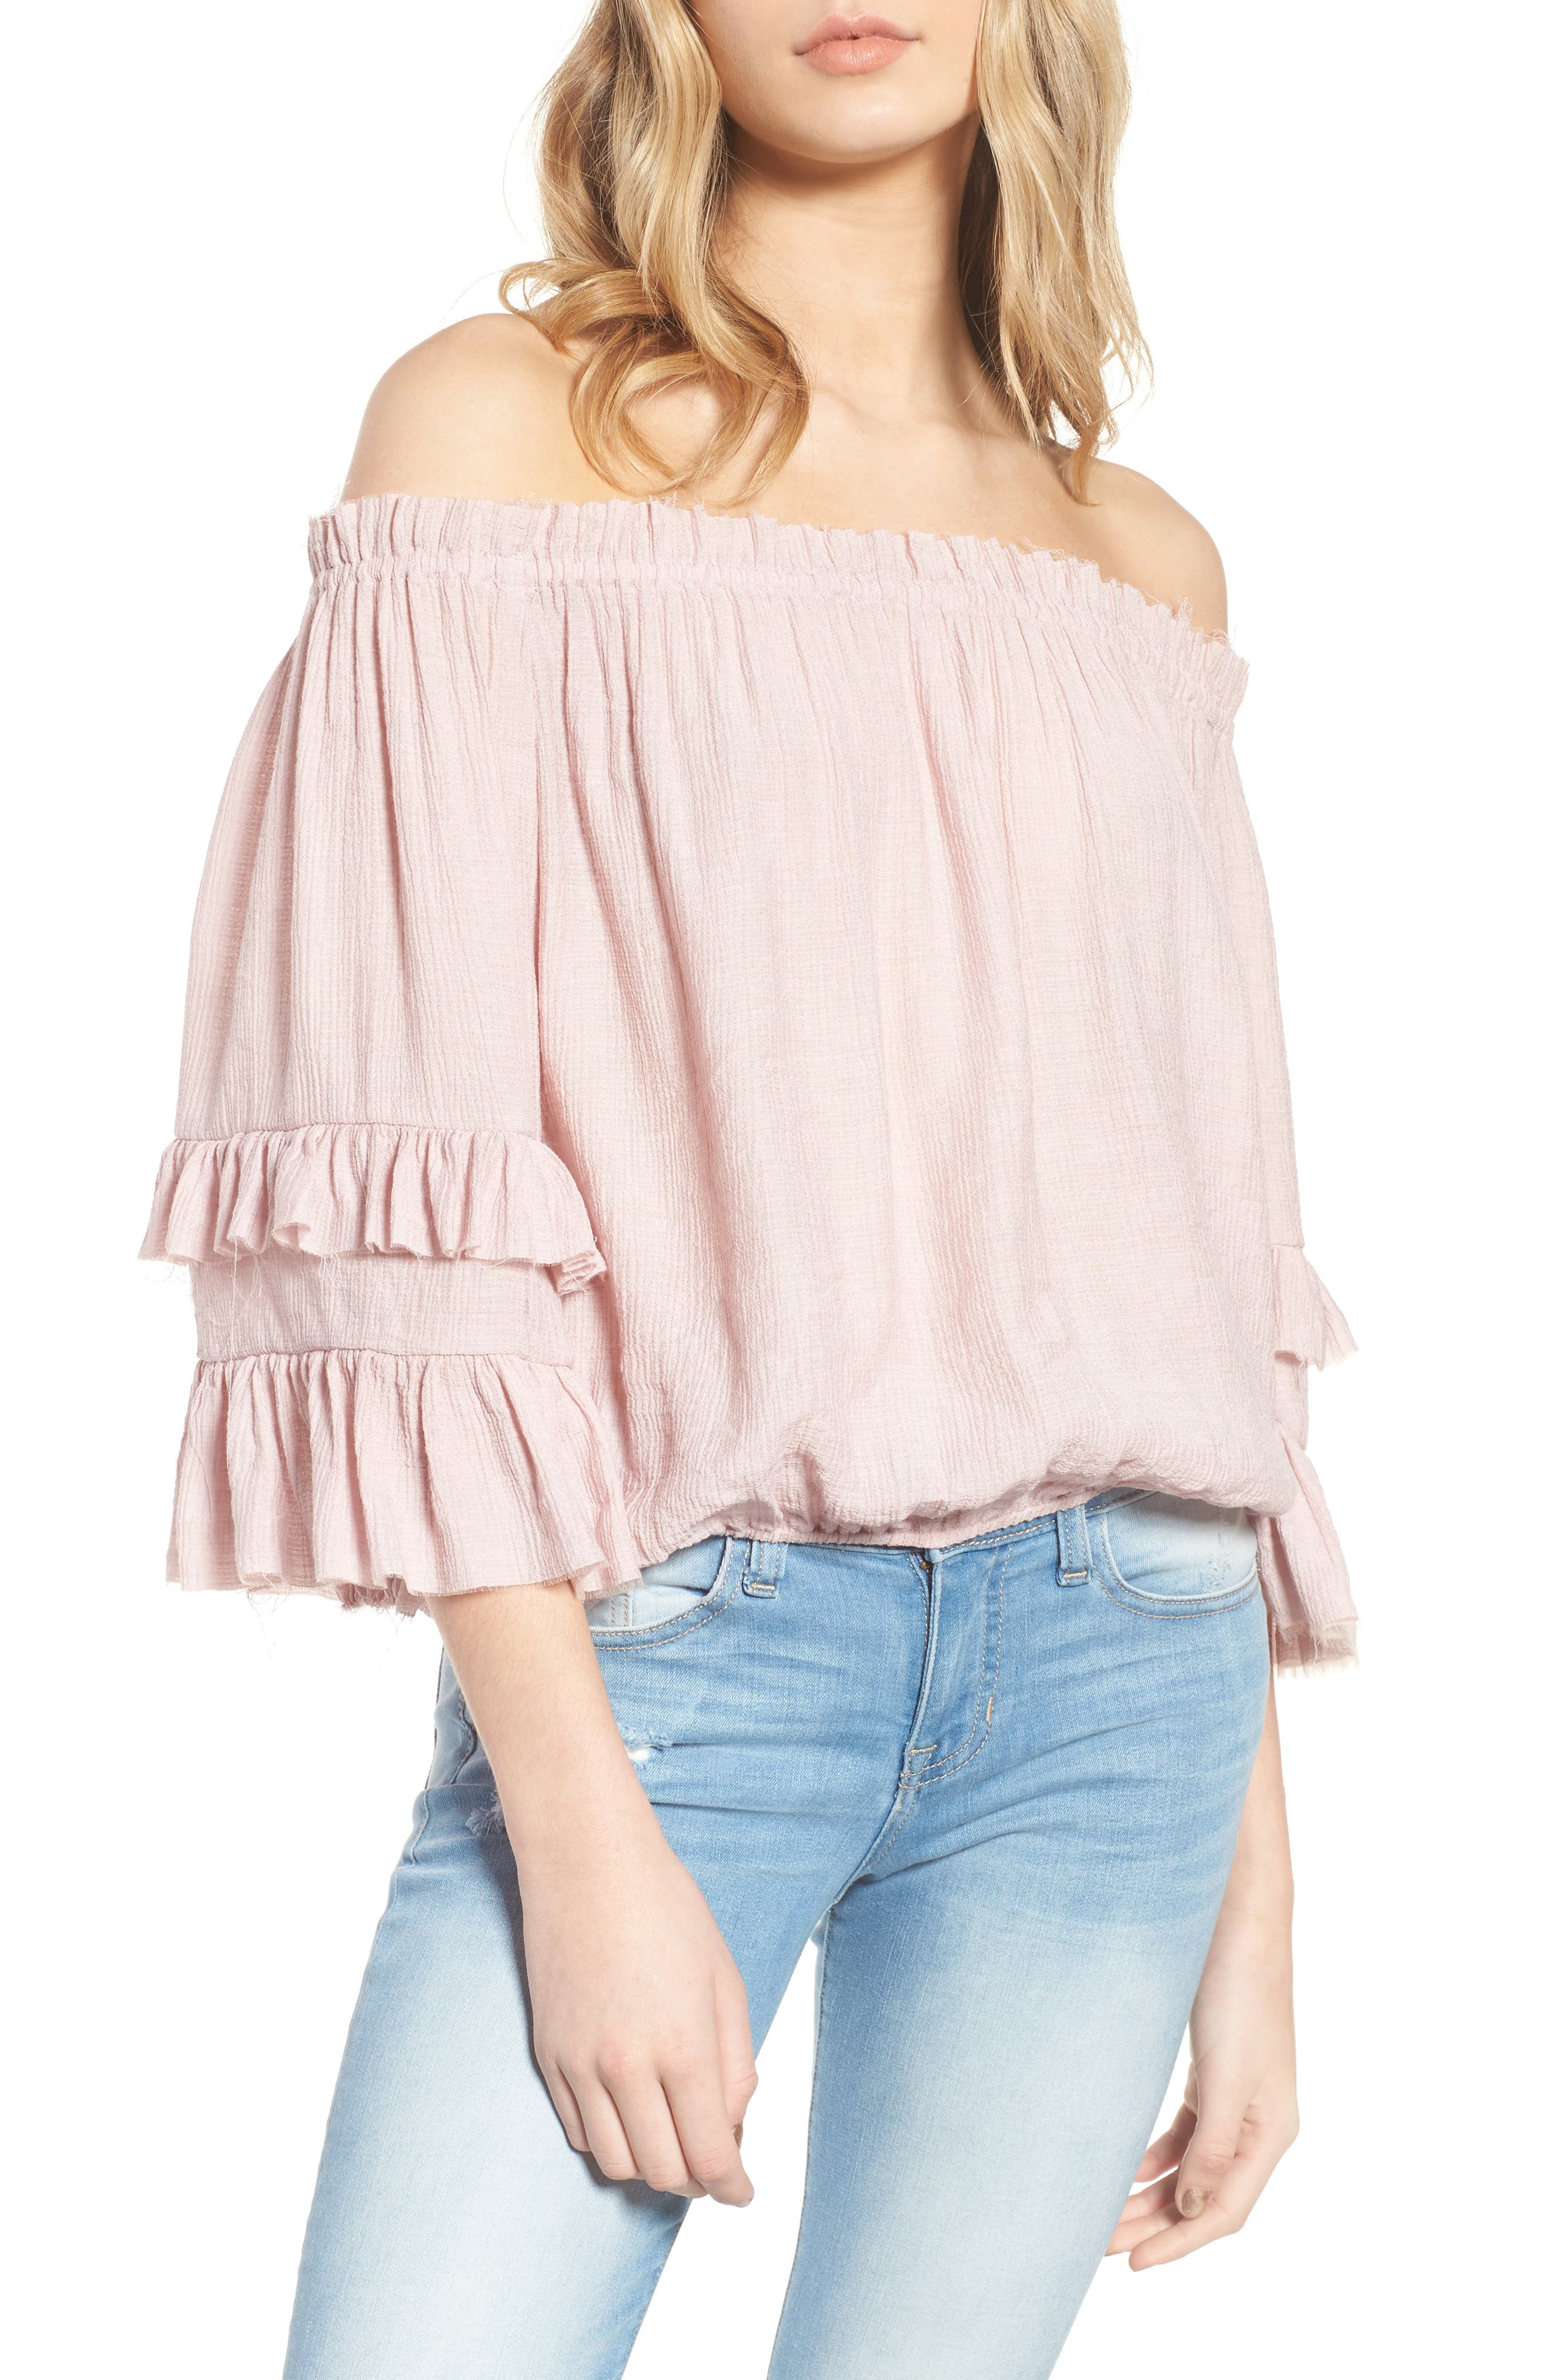 KNOW ONE CARES Tiered Off the Shoulder Top, Main, color, 685